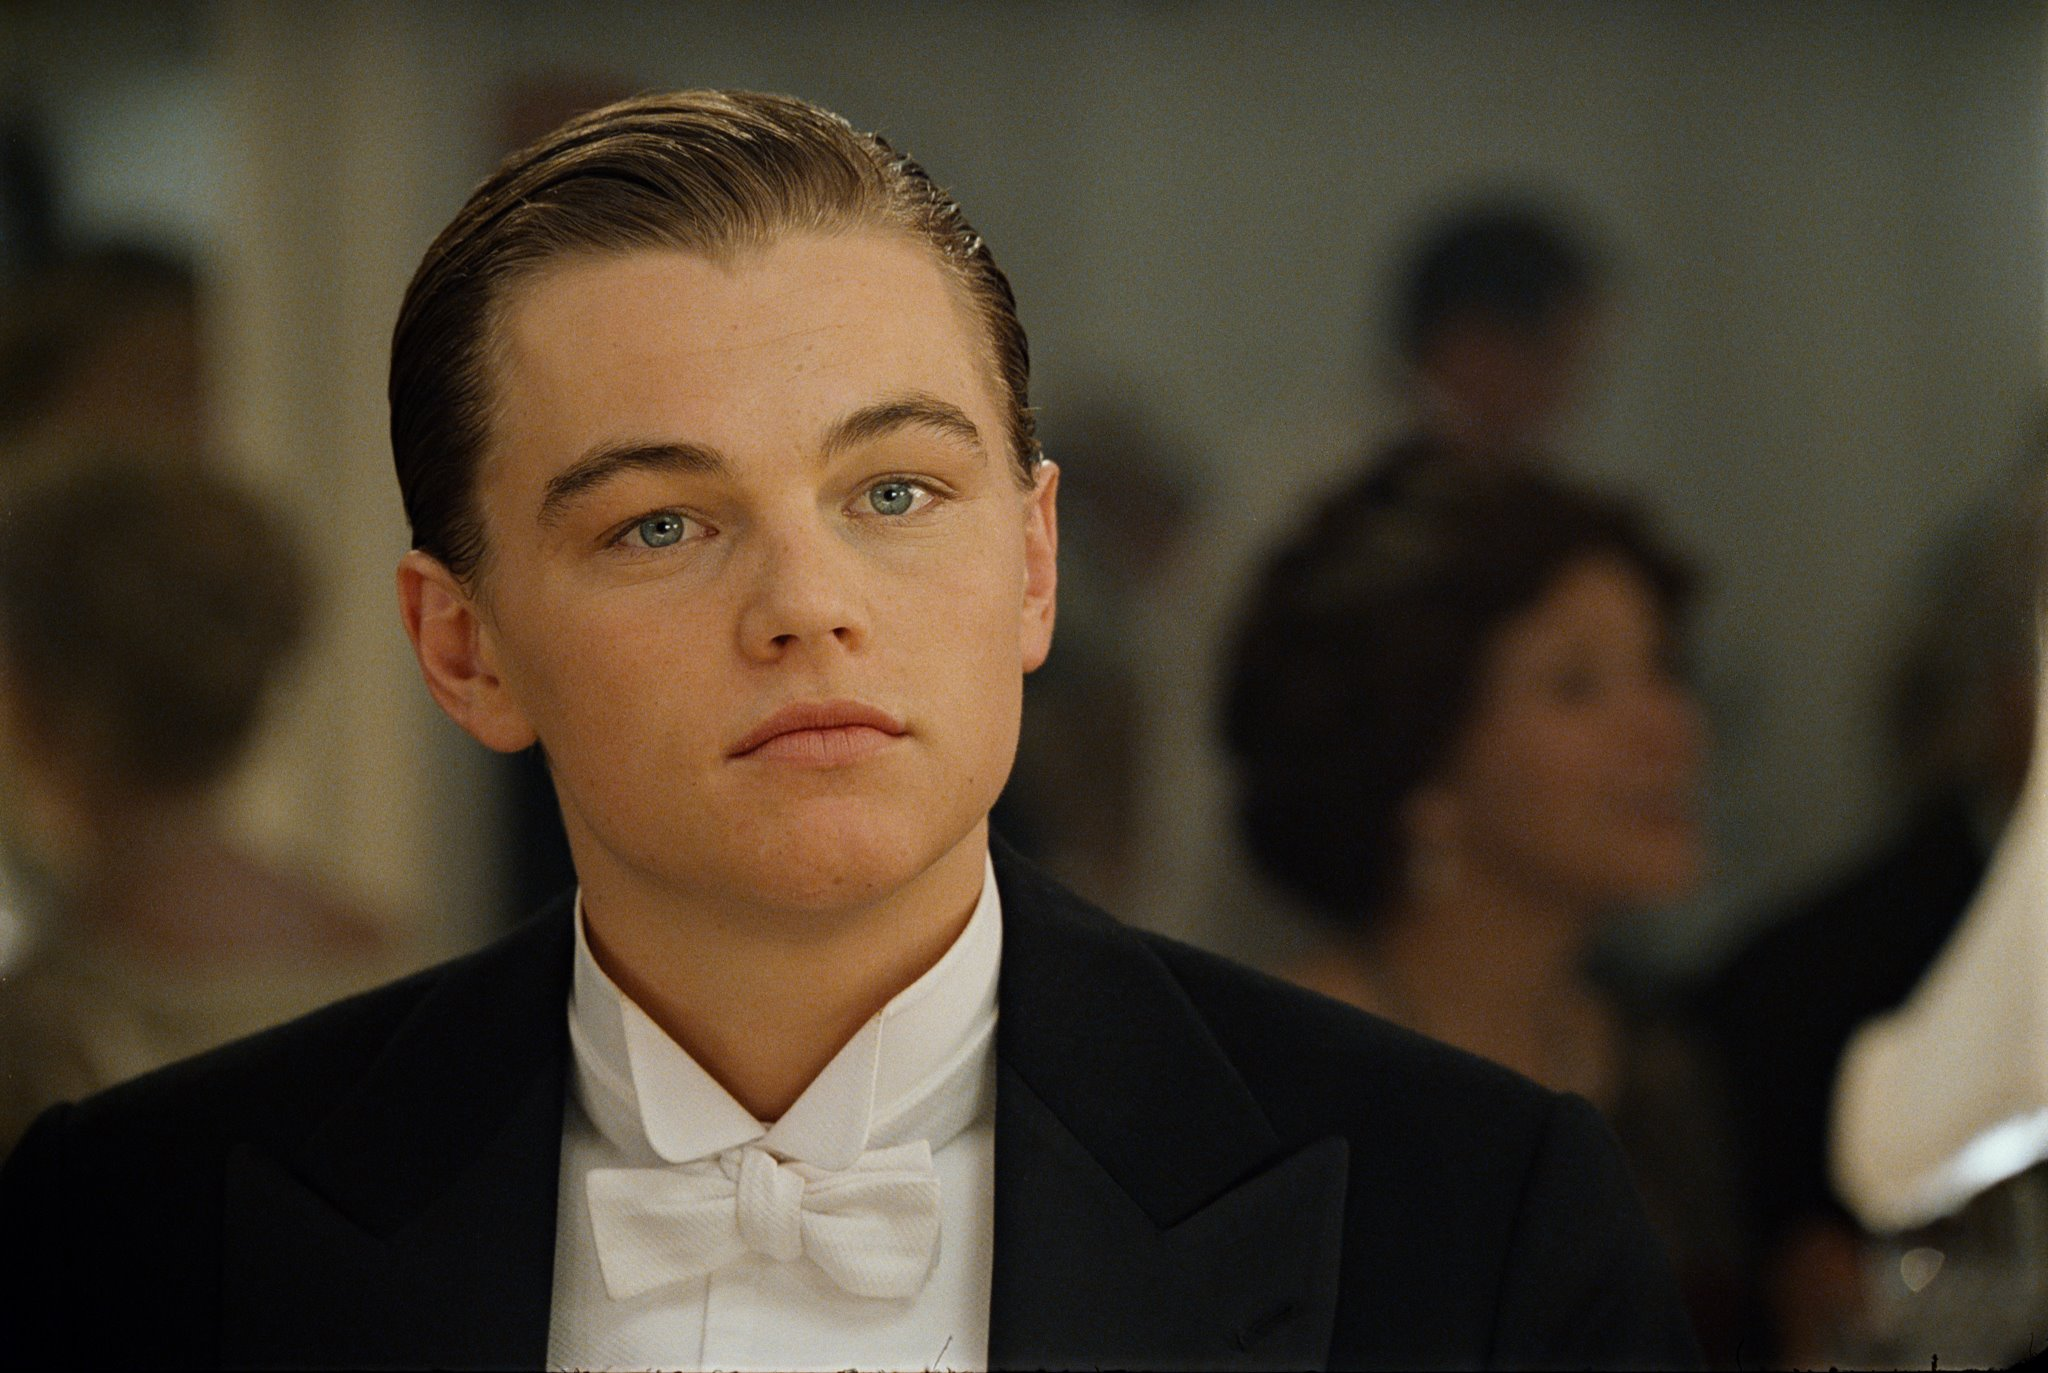 TITANIC 3D Movie HQ Stills - Titanic Photo (29487337) - Fanpop